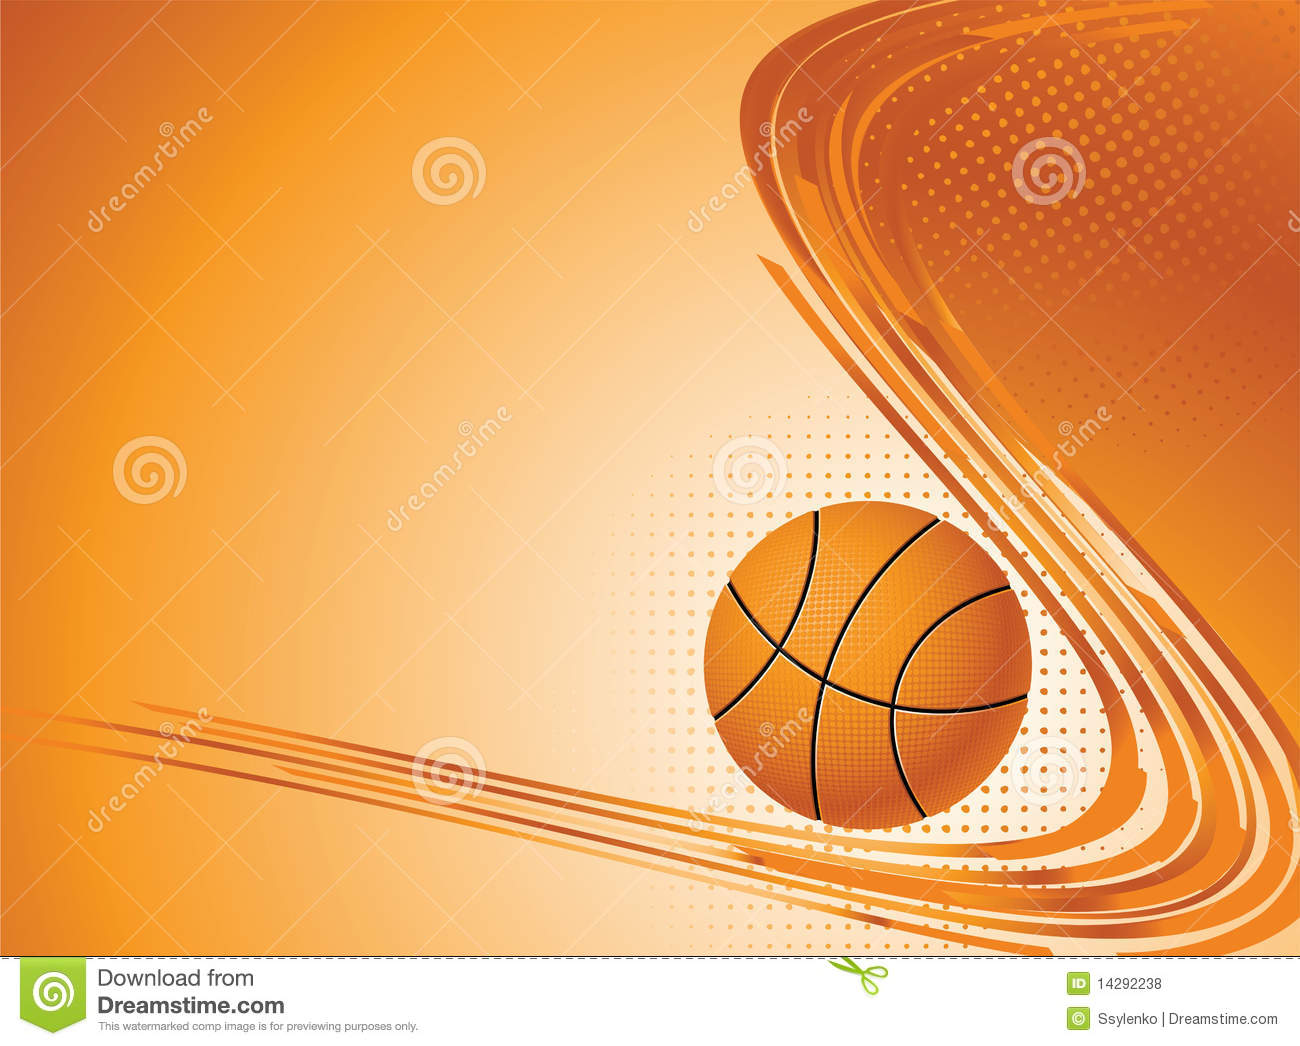 Abstract Sports Background Royalty Free Stock Image: Abstract Sport Background. Stock Vector. Illustration Of